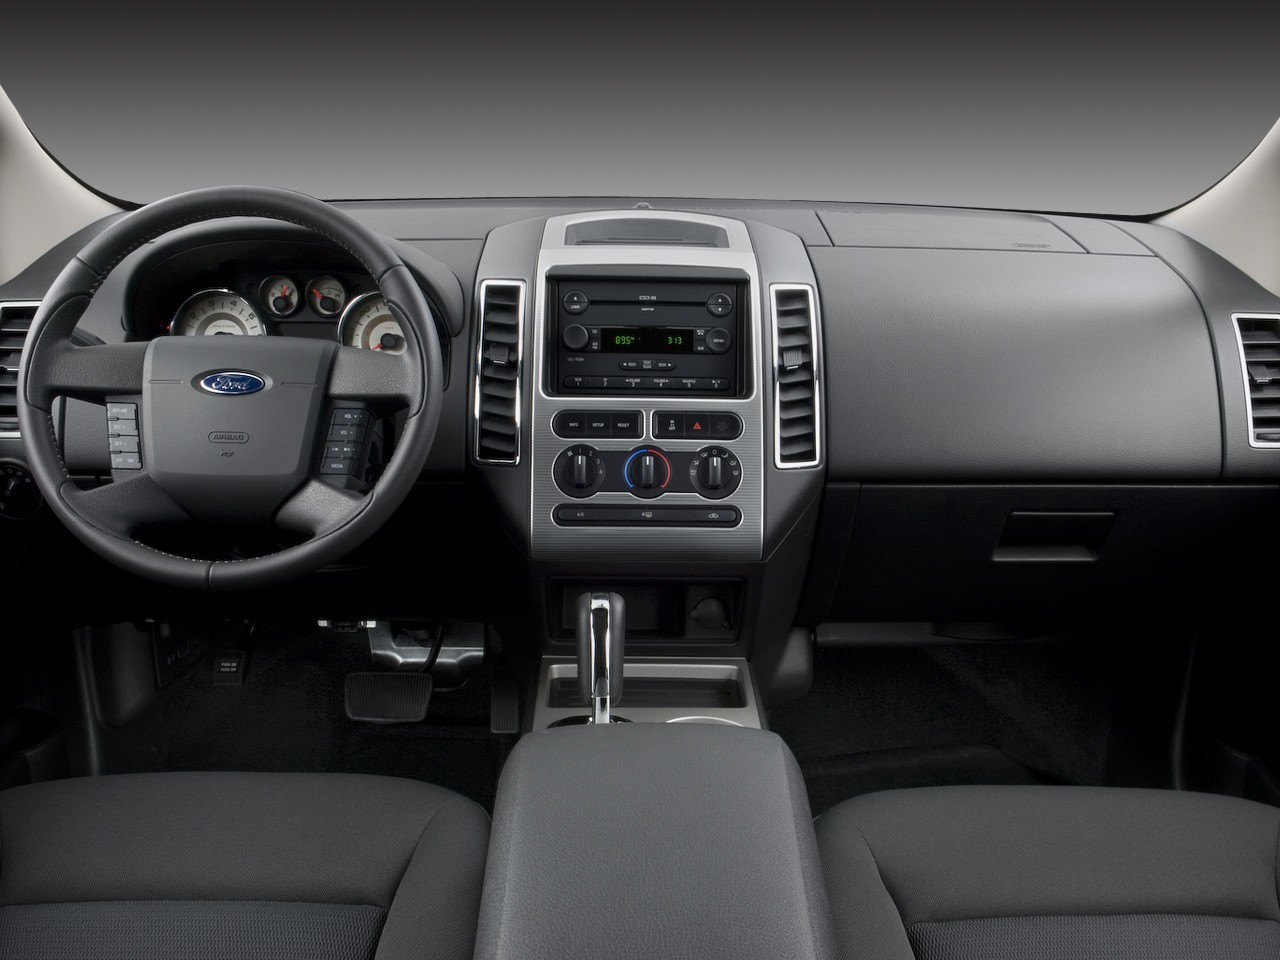 2007 Ford Edge Interior Dimensions